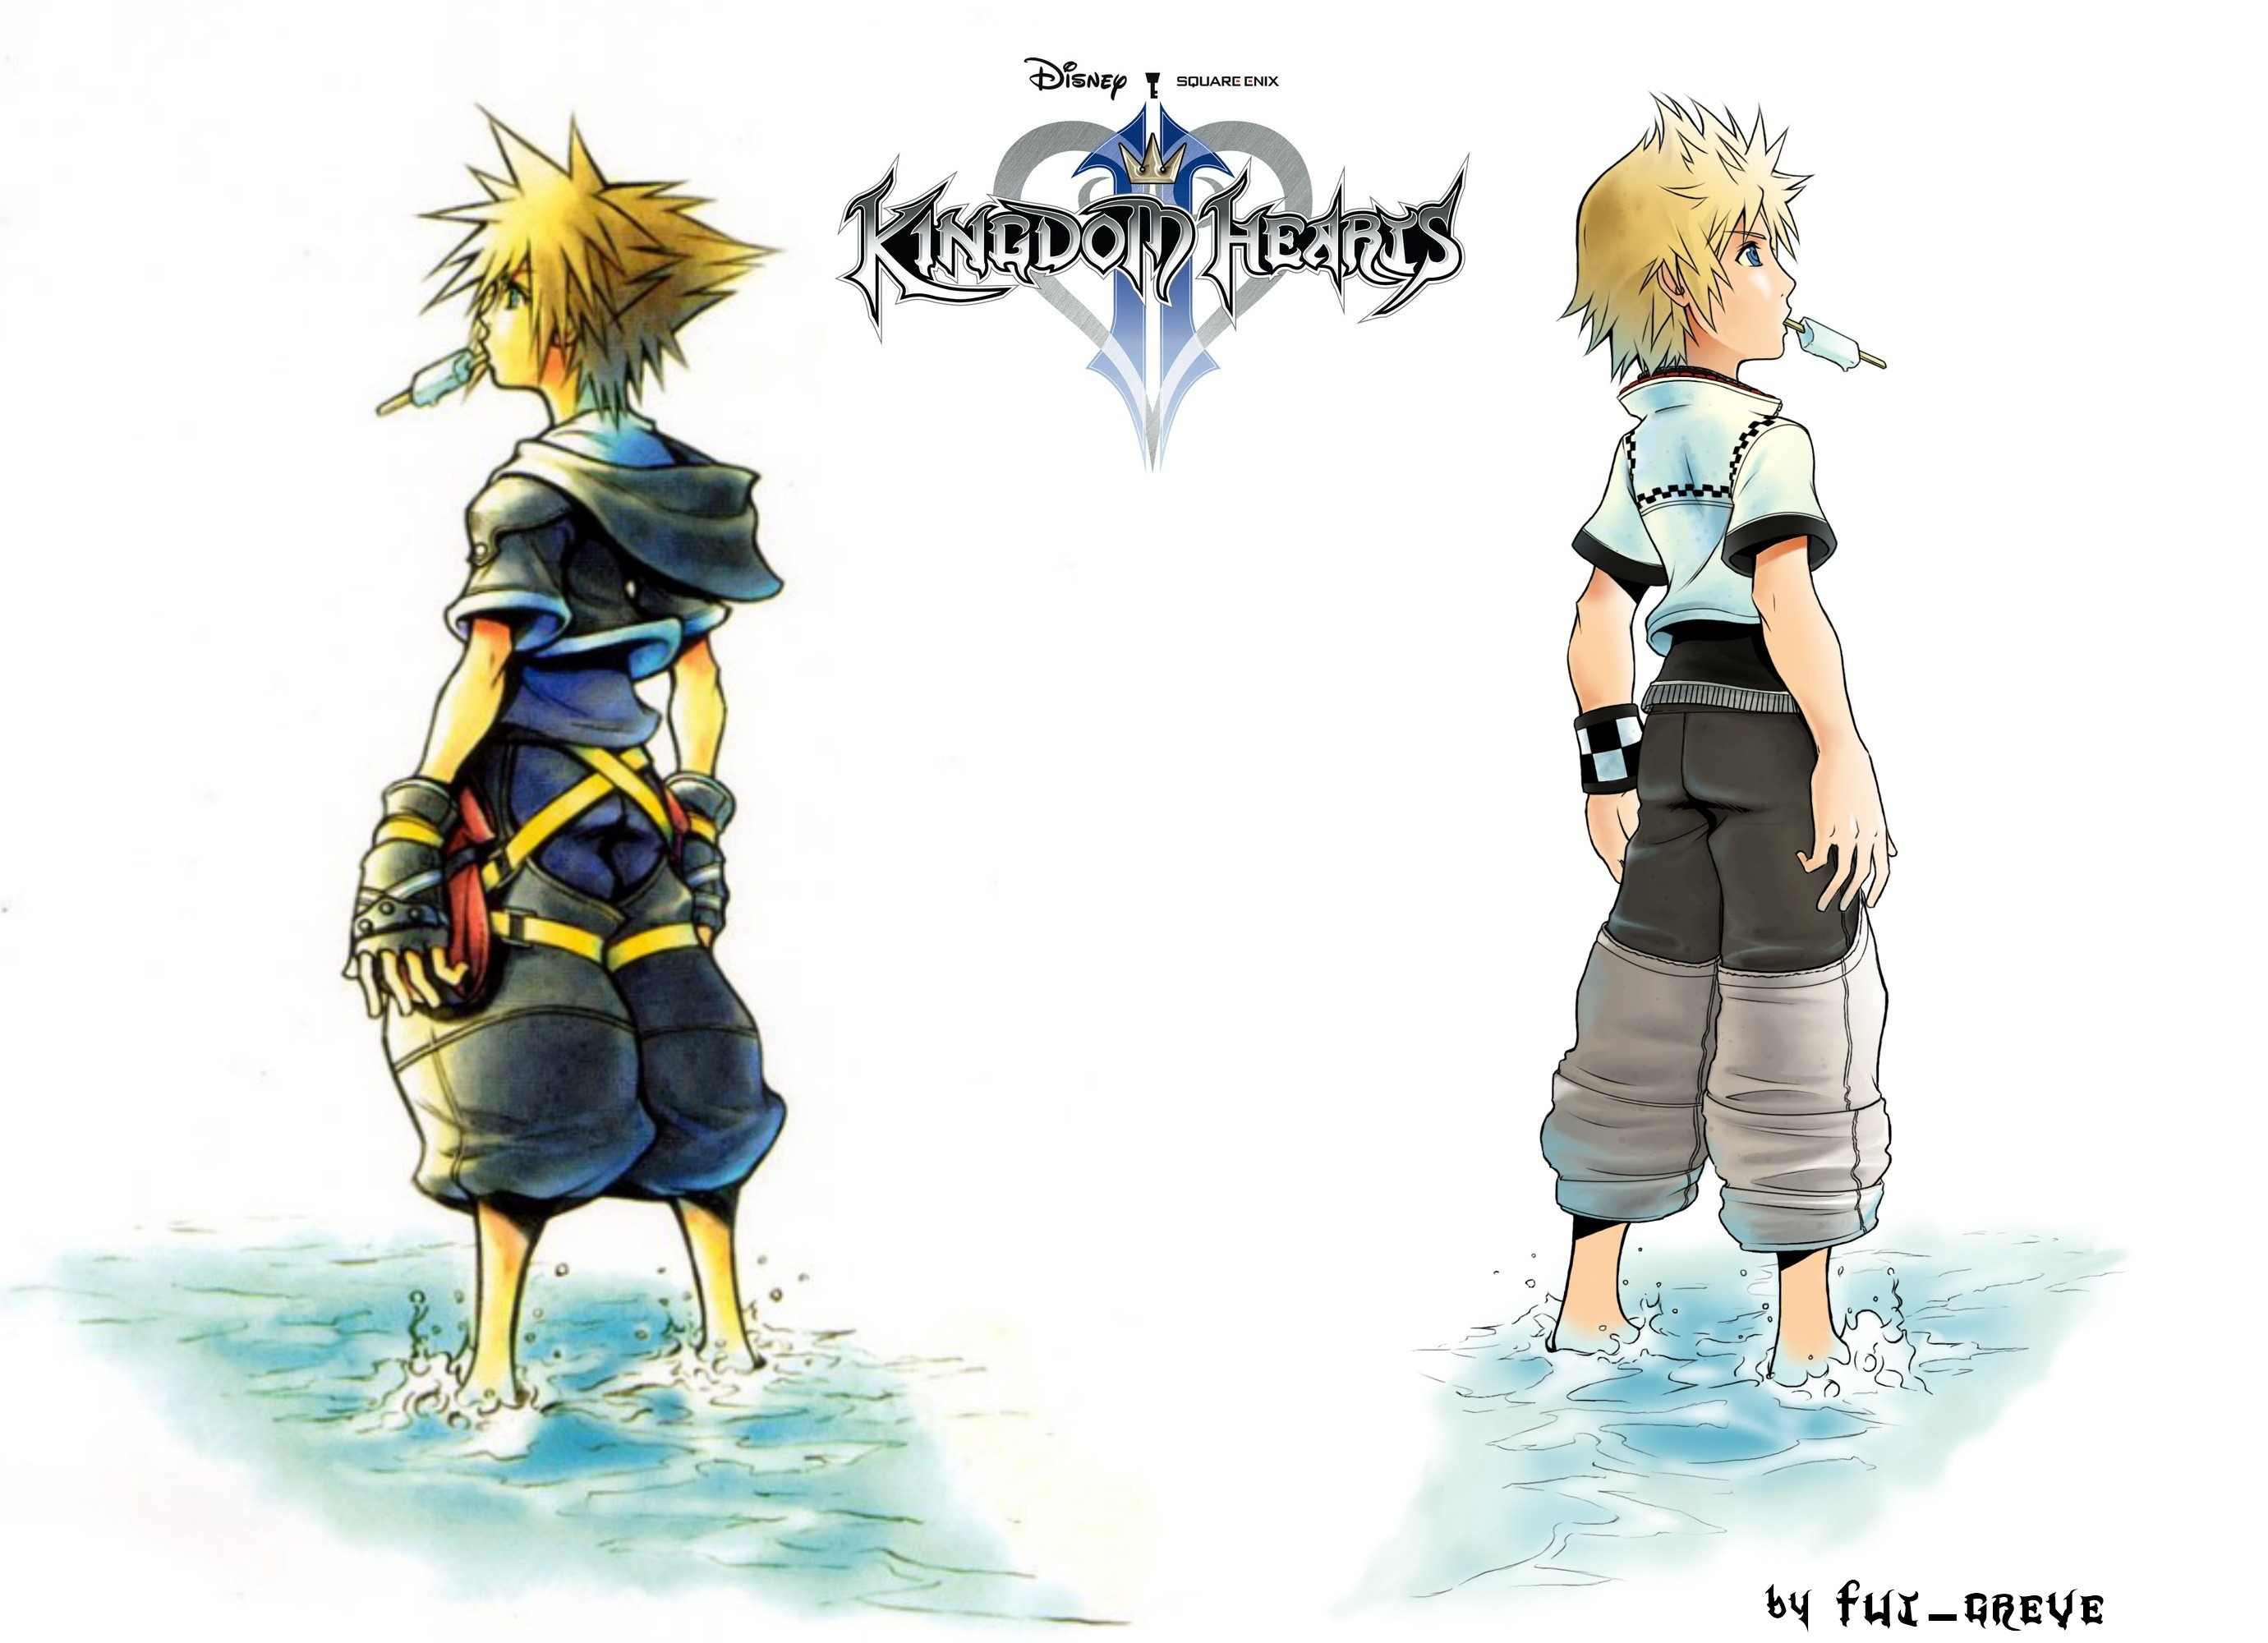 2761x2000 kingdom hearts 2 Sora and Roxas wallpaper by fut-greve on DeviantArt